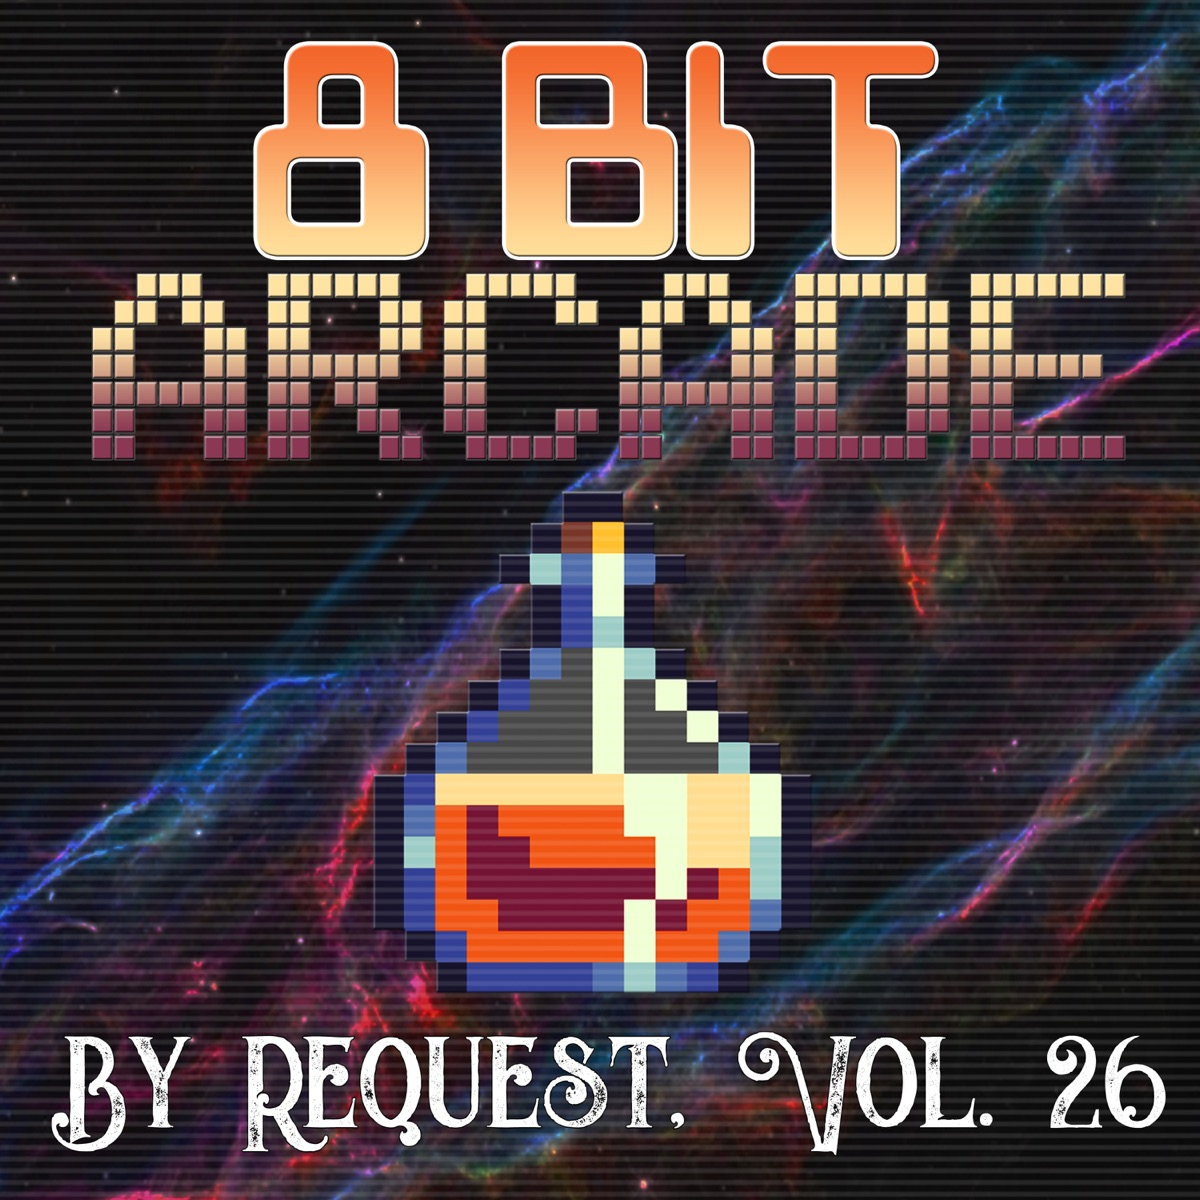 By Request Vol 26 8-Bit Arcade CD cover